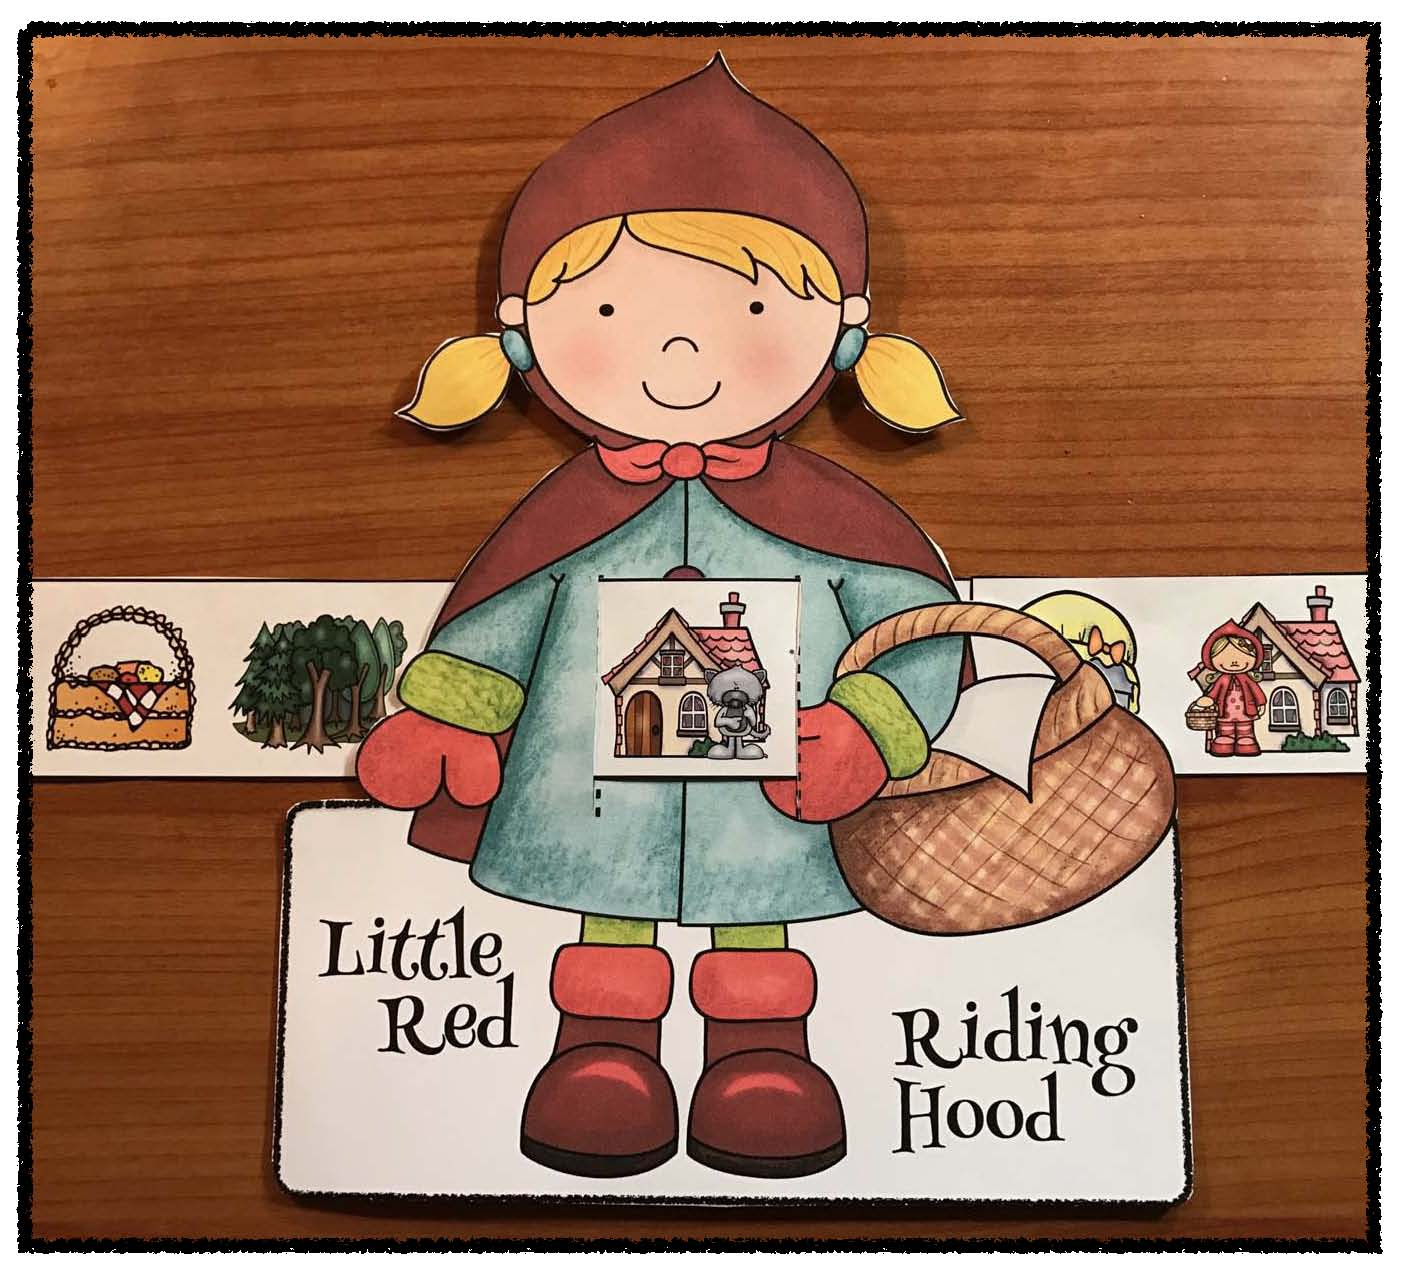 little red riding hood activities, little red riding hood crafts, fairy tale activities, fairy tale crafts, sequencing a story activities, retelling a story activities